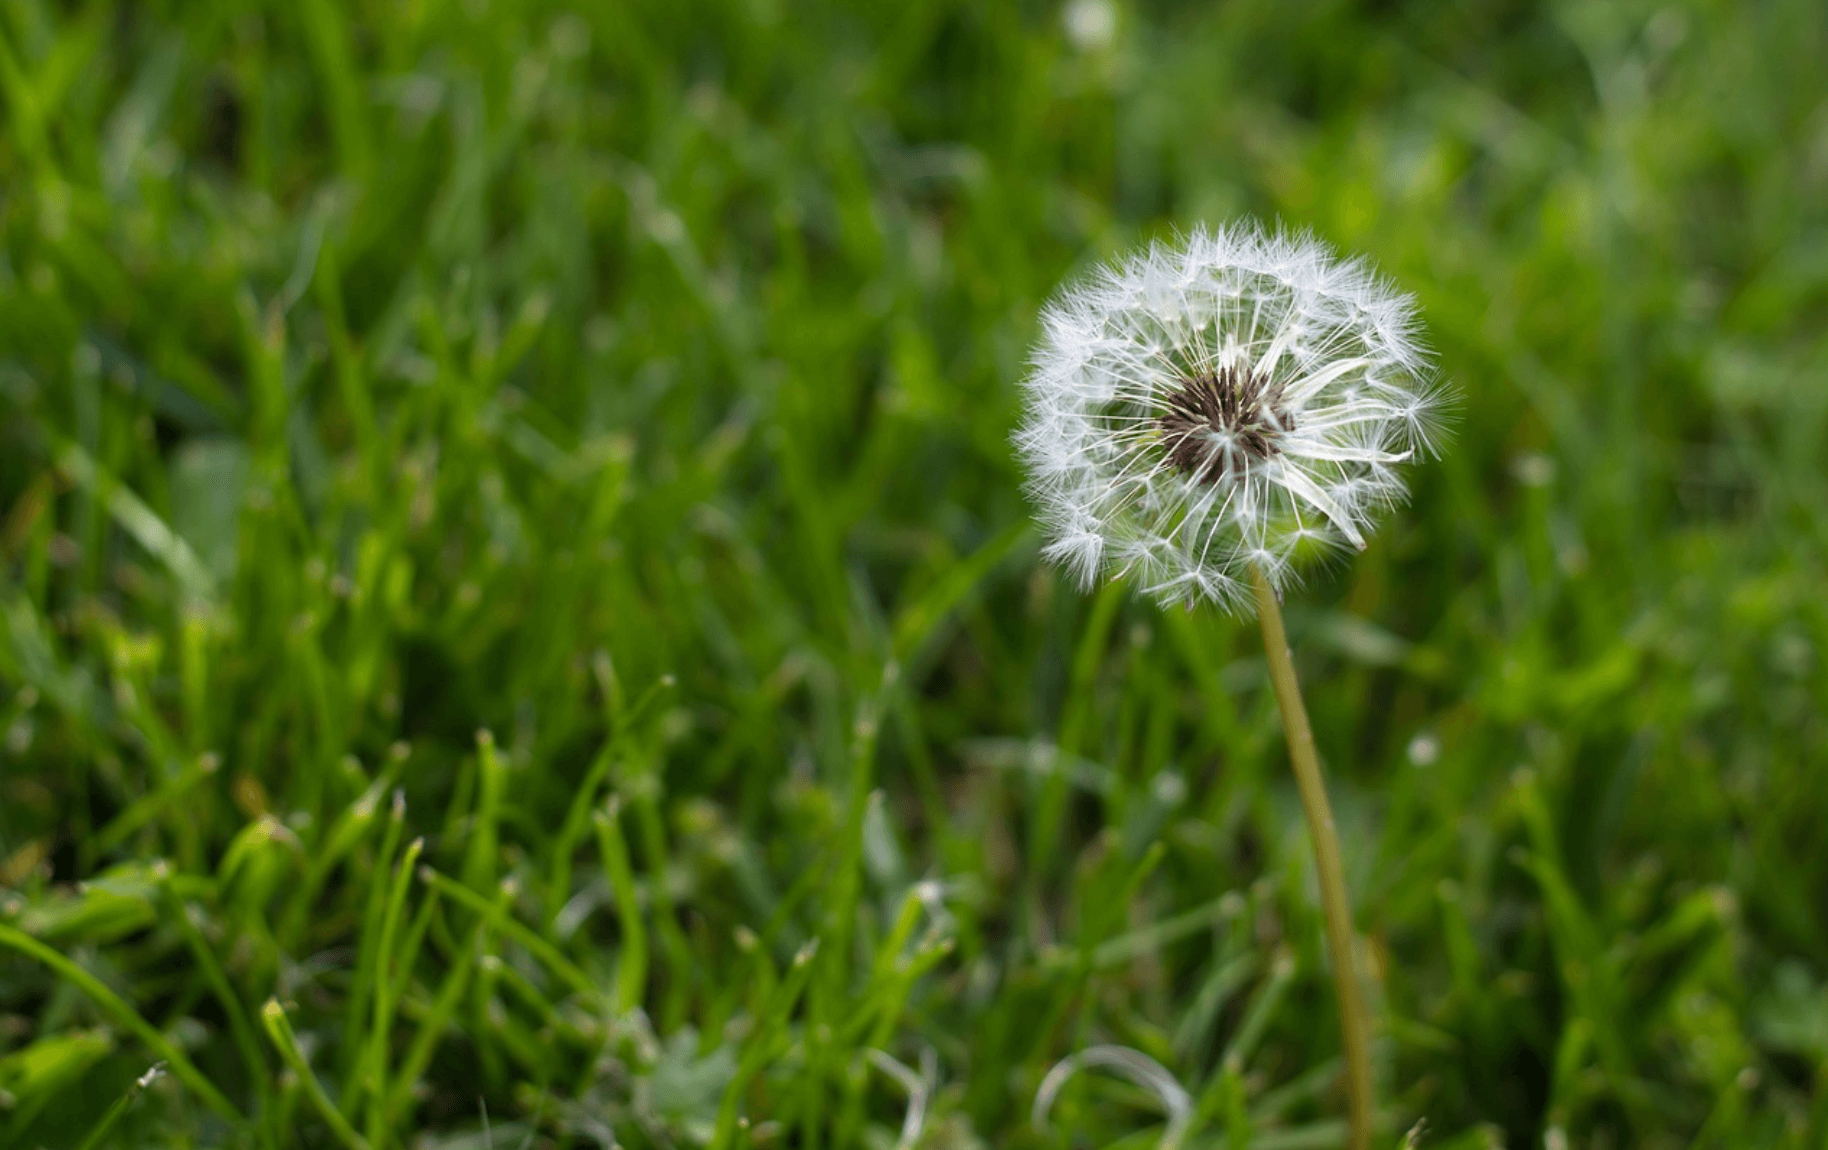 Close-up of dandelion weed.